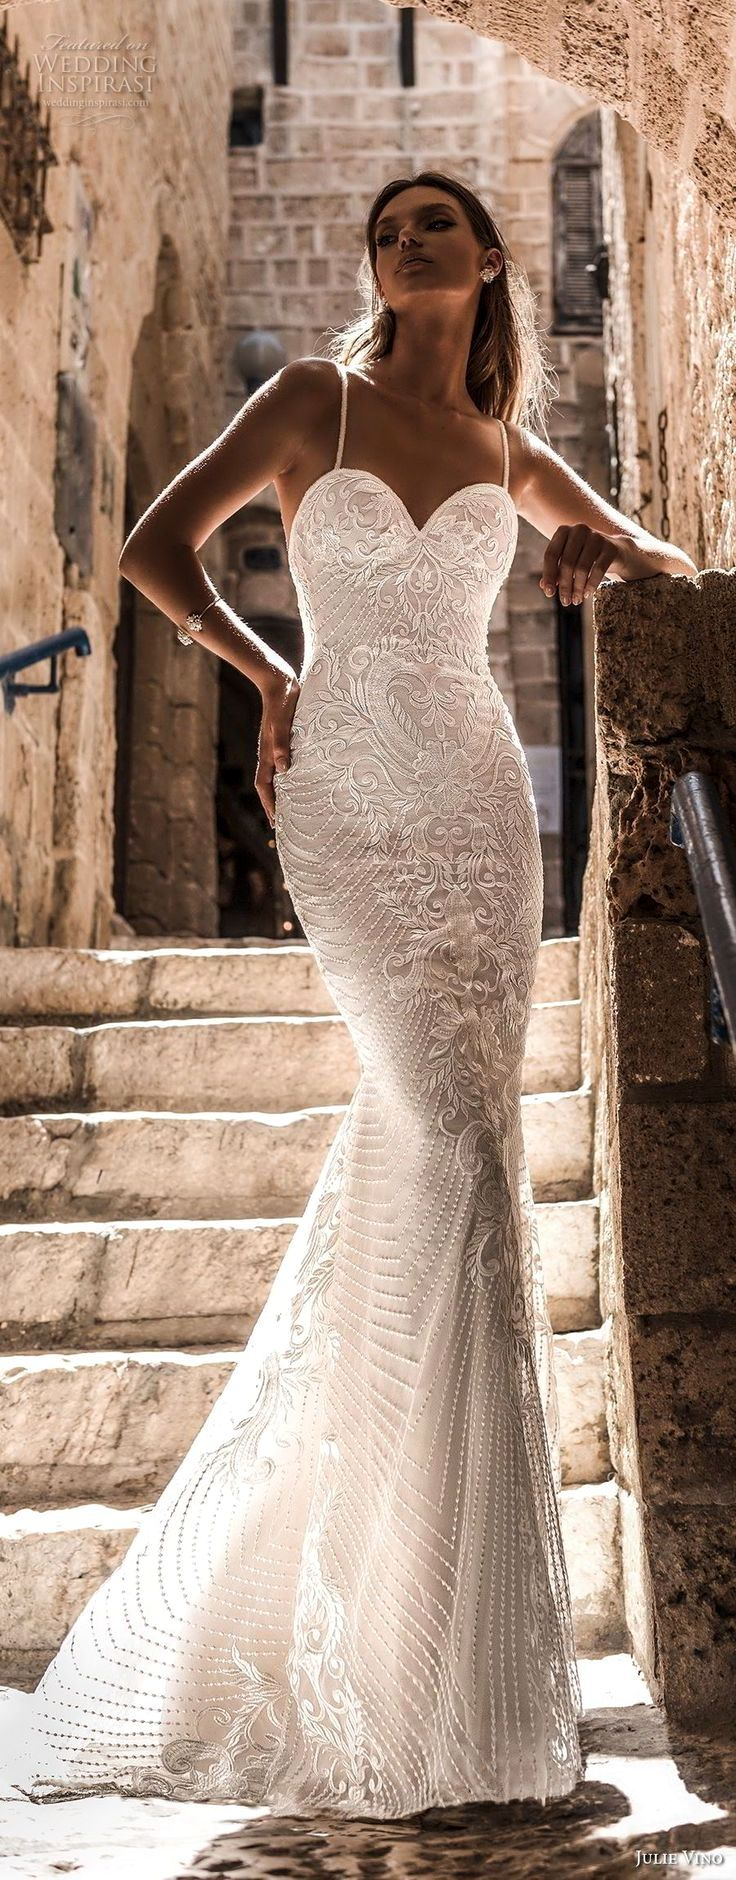 Elegant wedding dress. Ignore the soon-to-be husband, for the time being lets co…